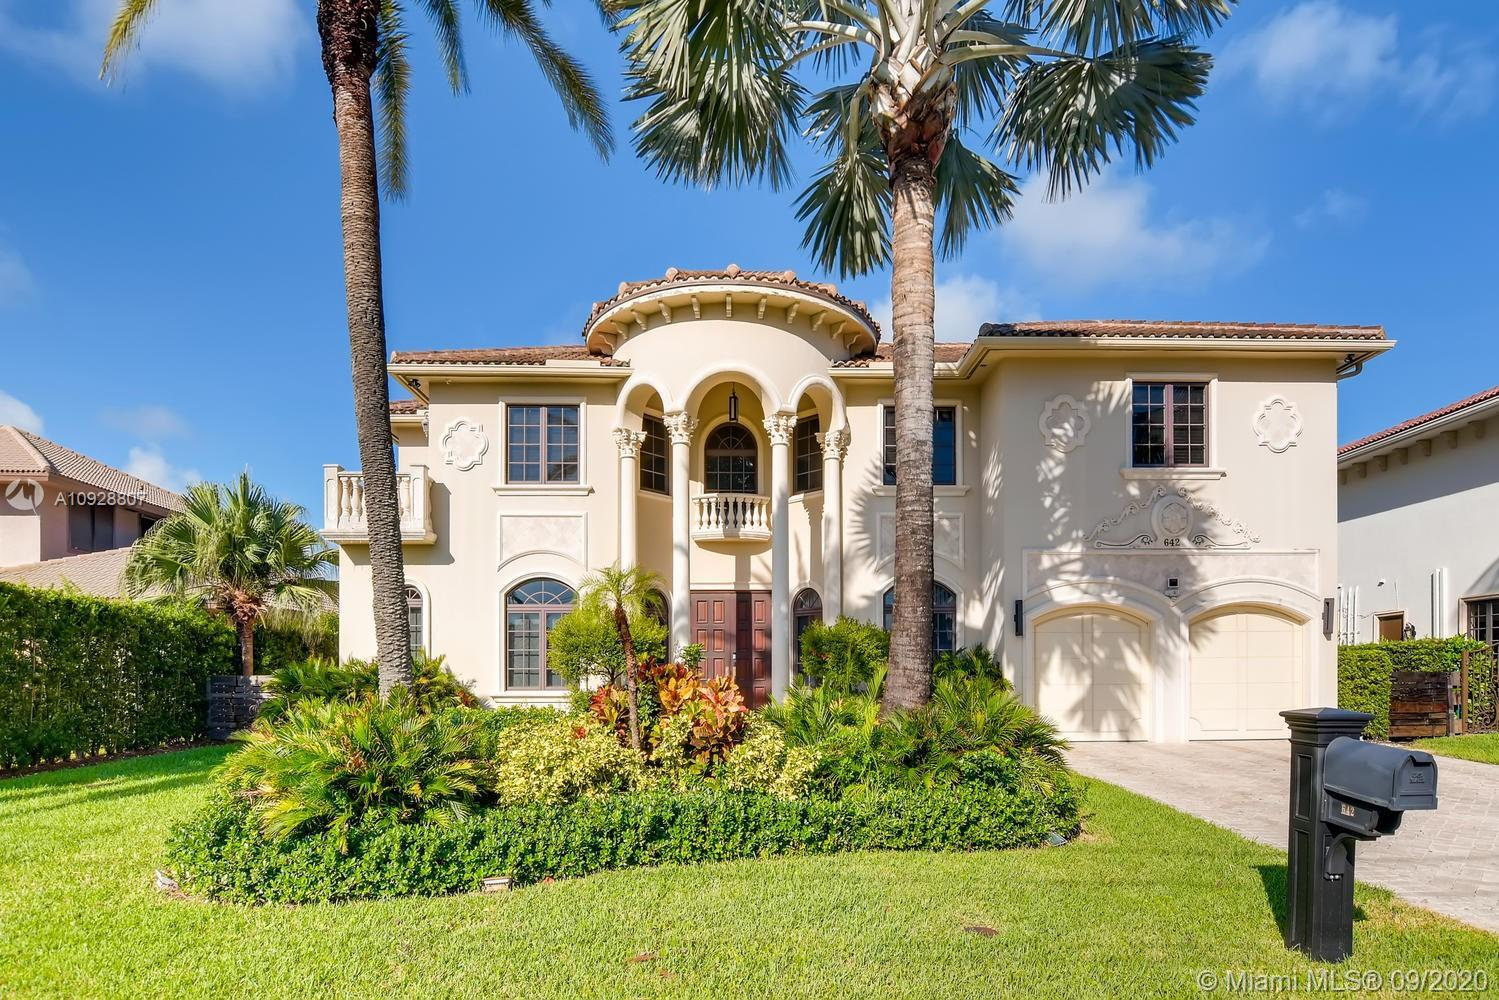 GORGEOUS MEDITERRANEAN STYLE MANSION IN GOLDEN ISLES. TWO STORIES WITH 6 BEDS, 7/1 BATHS + MAIDS ROO